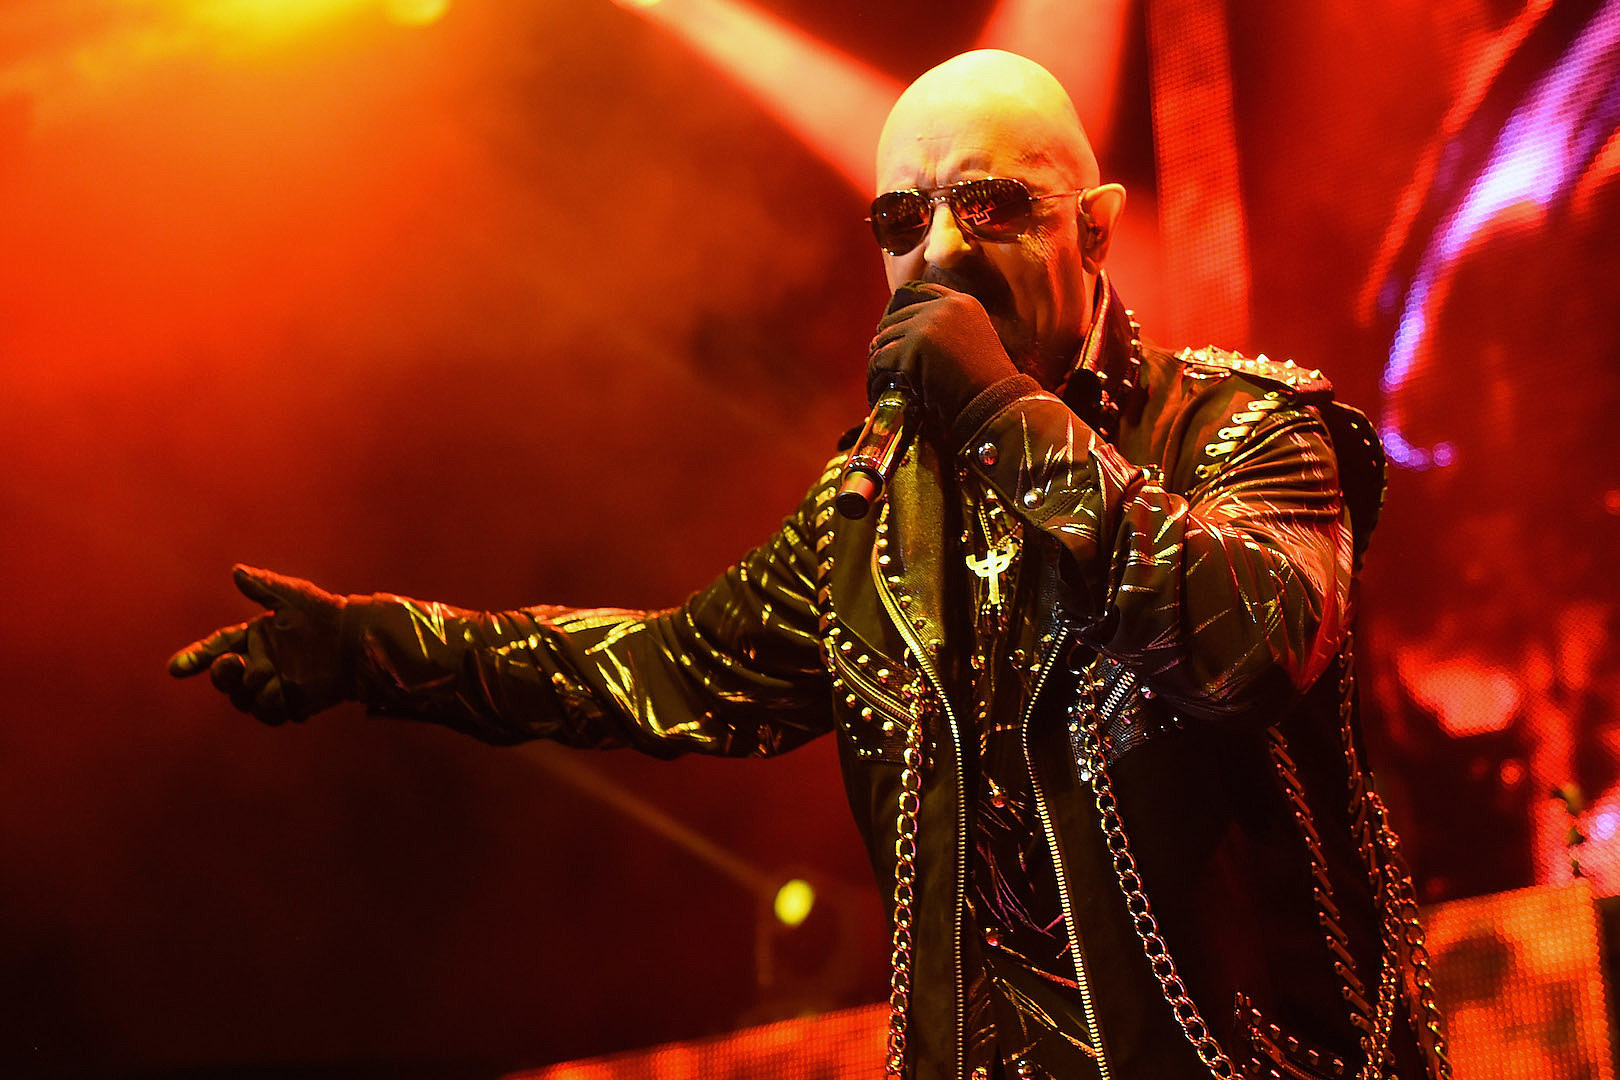 Judas Priest's Rob Halford Responds to Fake News Report About Hospitalization